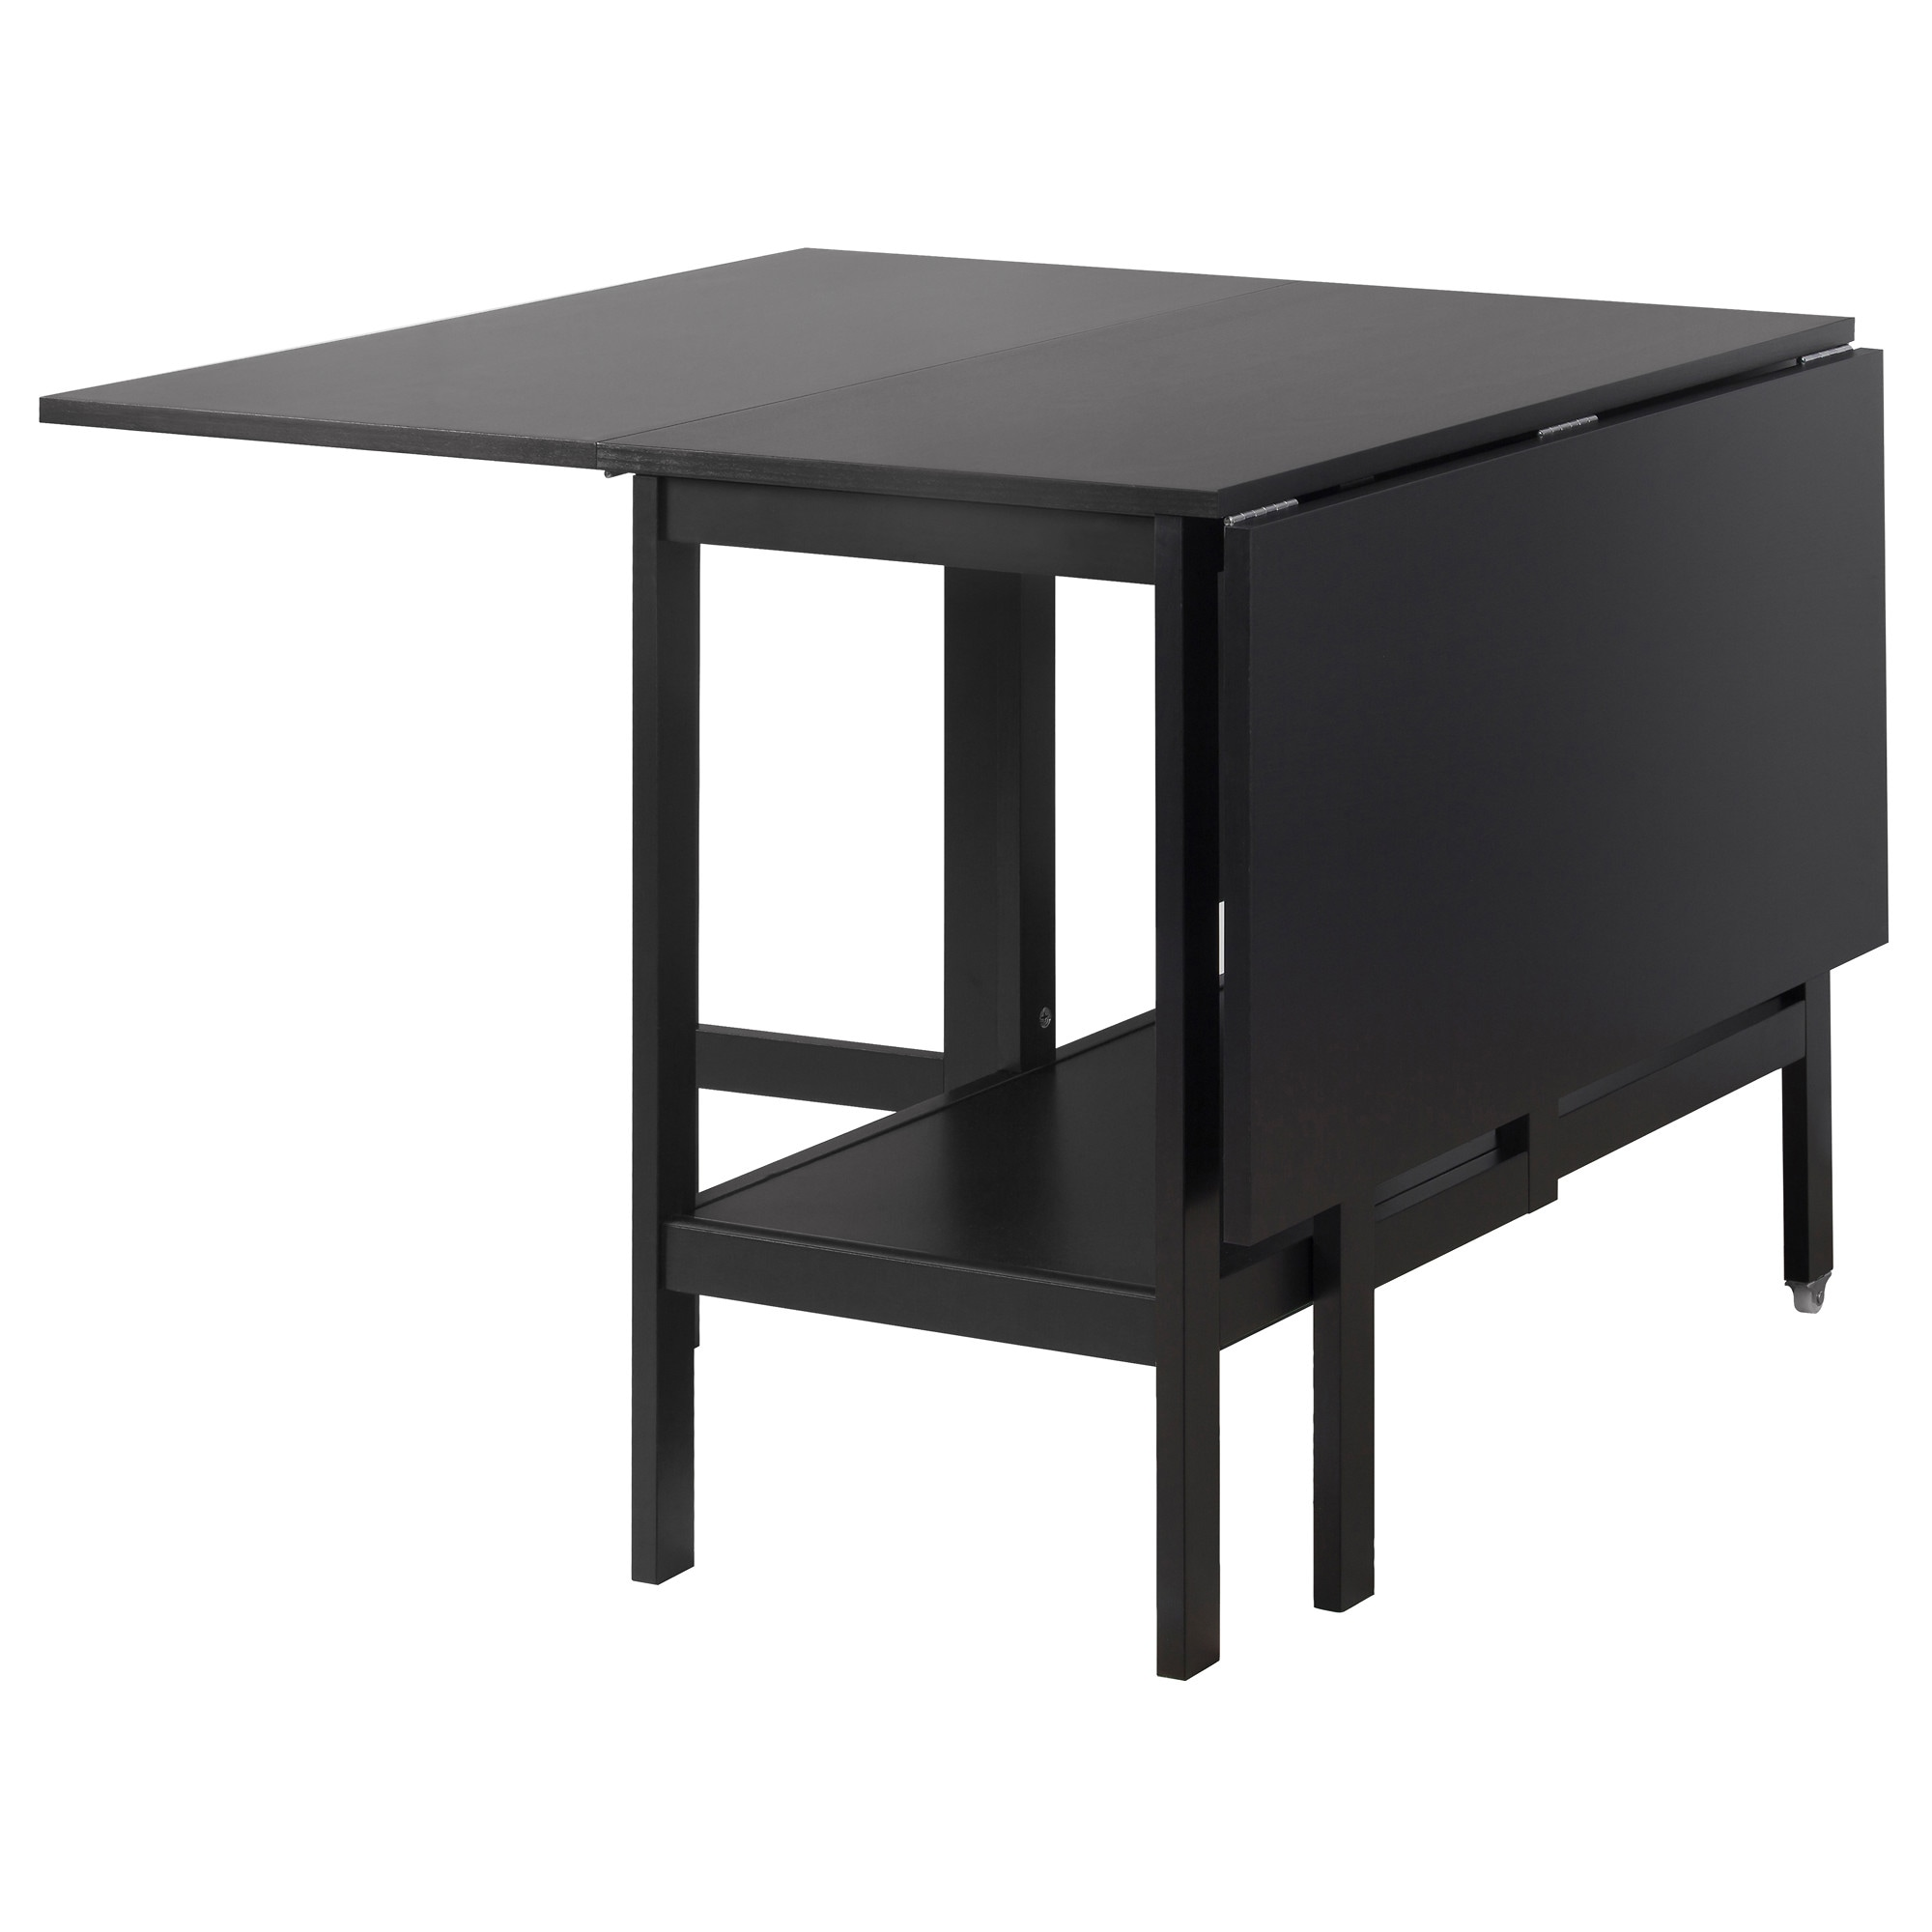 BARSVIKEN Drop leaf table IKEA